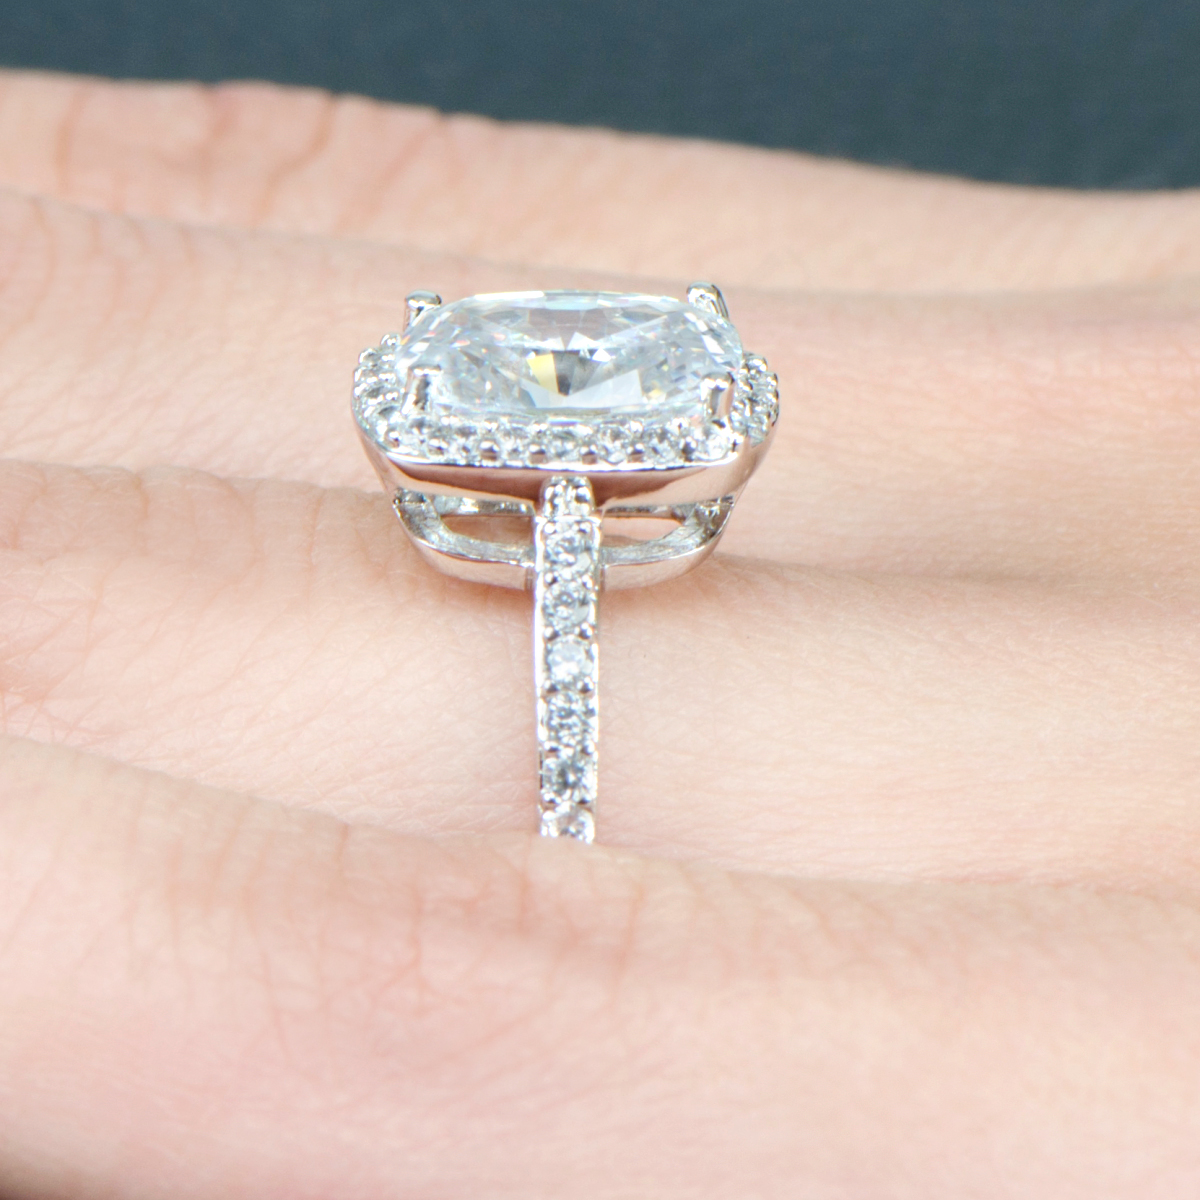 Amerie's 25 Carat Cushion Cut Halo Engagement Ring